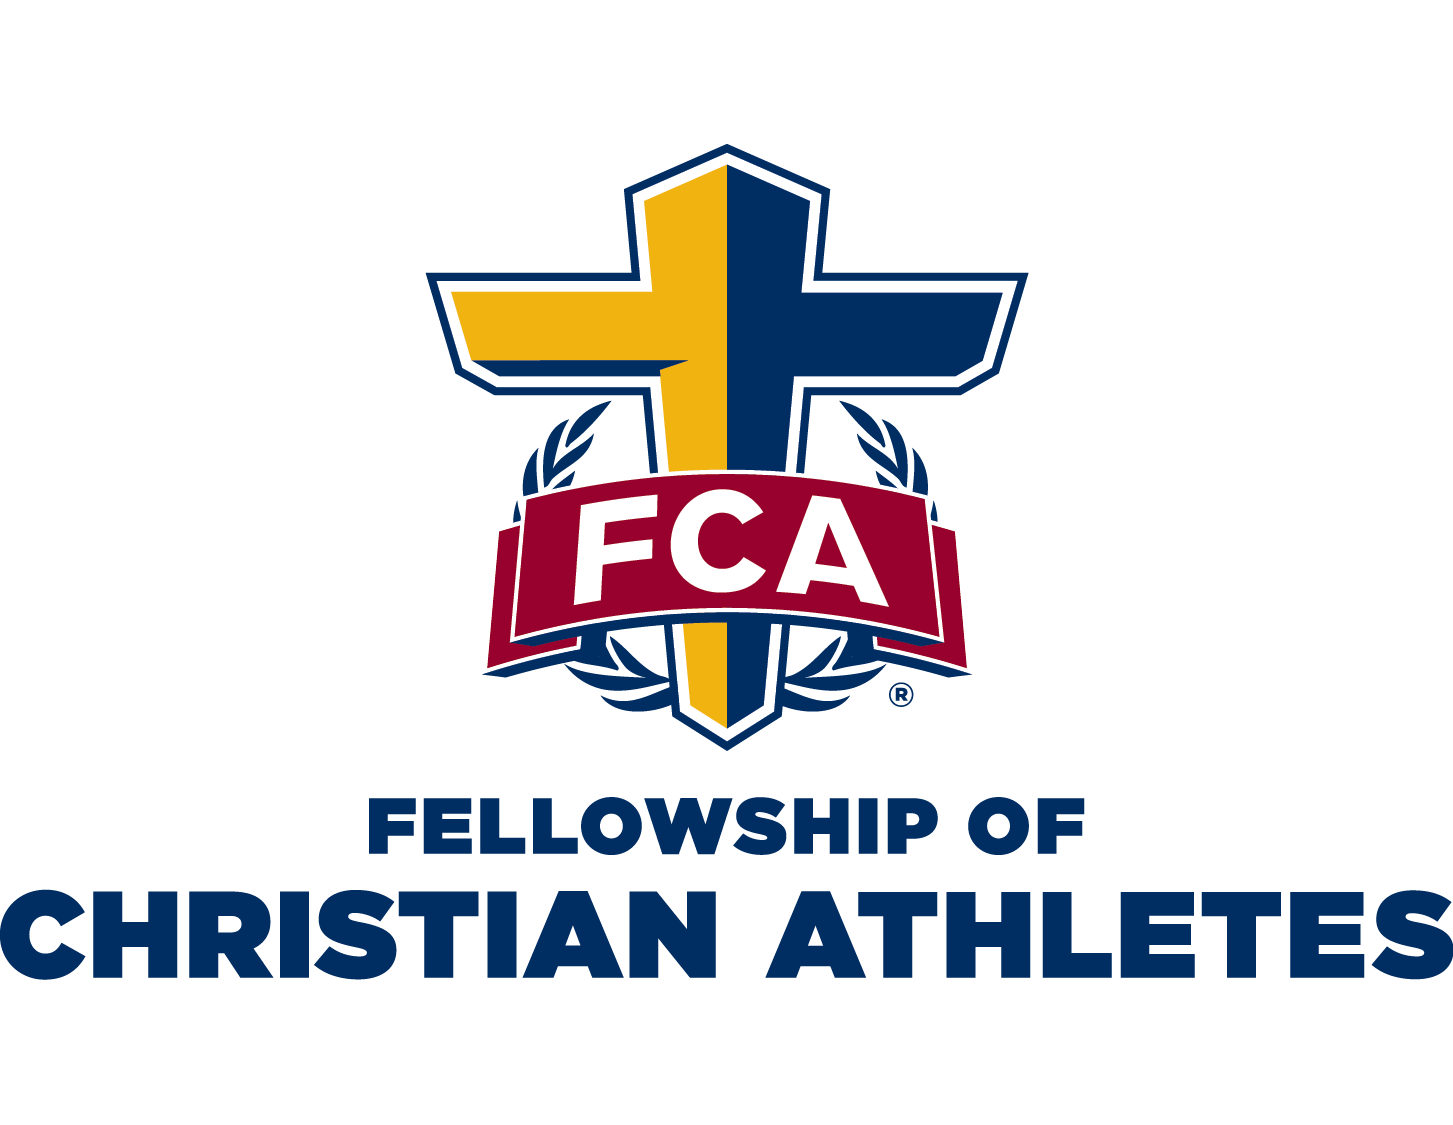 - The Fellowship of Christian Athletes is touching millions of lives…one heart at a time. Since 1954, FCA has been challenging coaches and athletes on the professional, college, high school, junior high and youth levels to use the powerful platform of sport to reach every coach and every athlete with the transforming power of Jesus Christ. FCA focuses on serving local communities around the globe by engaging, equipping and empowering coaches and athletes to unite, inspire and change the world through the gospel.For more information about FCA in our community, contact Rick Butler.